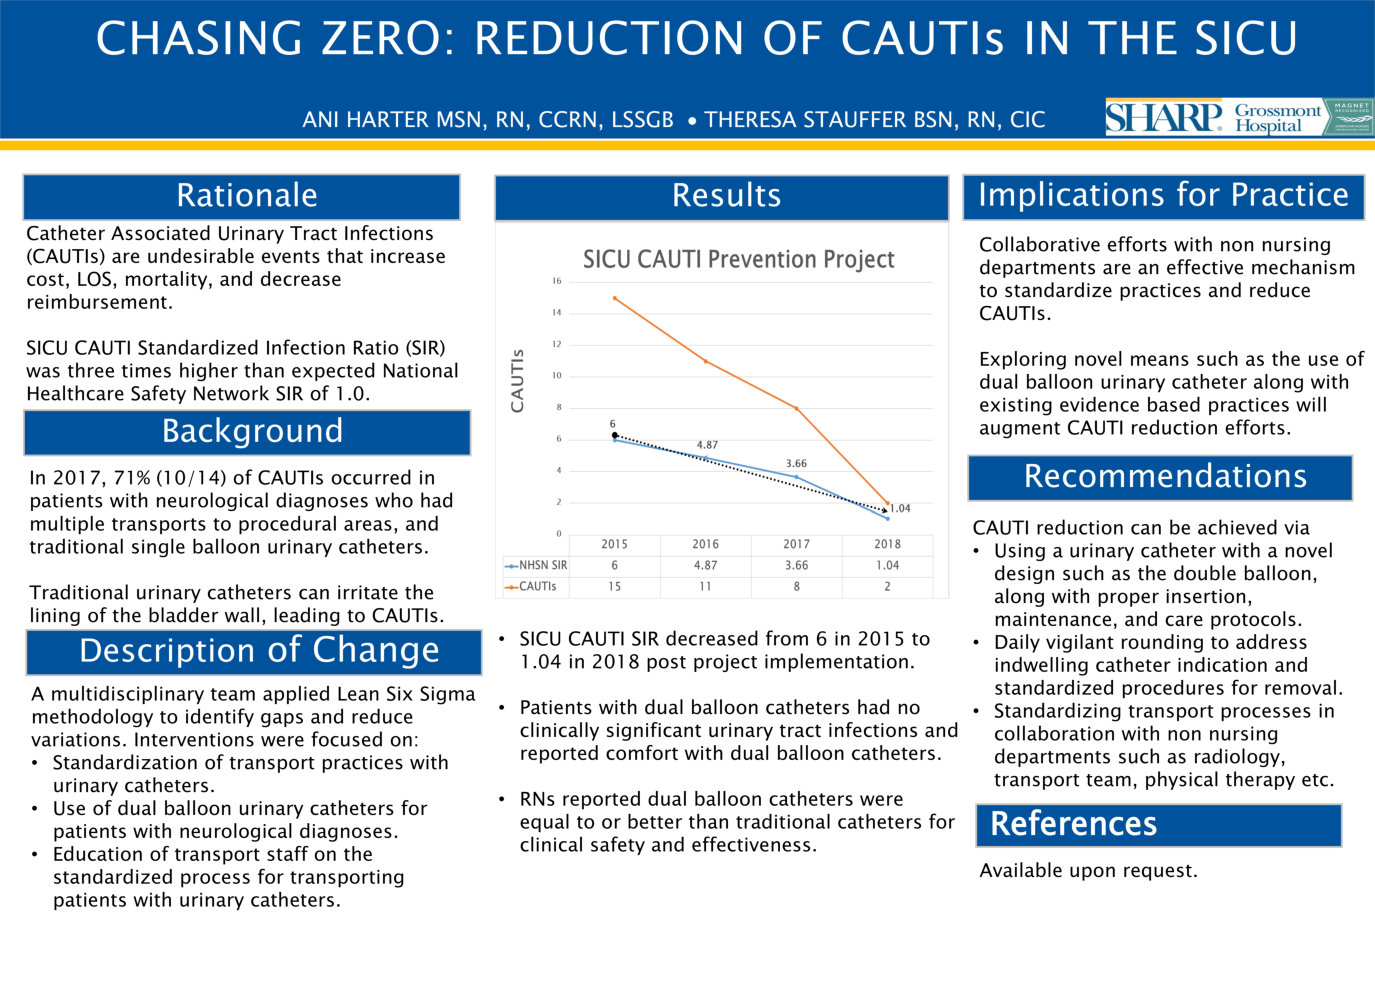 Chasin Zero: Reduction of CAUTIs in the SICU